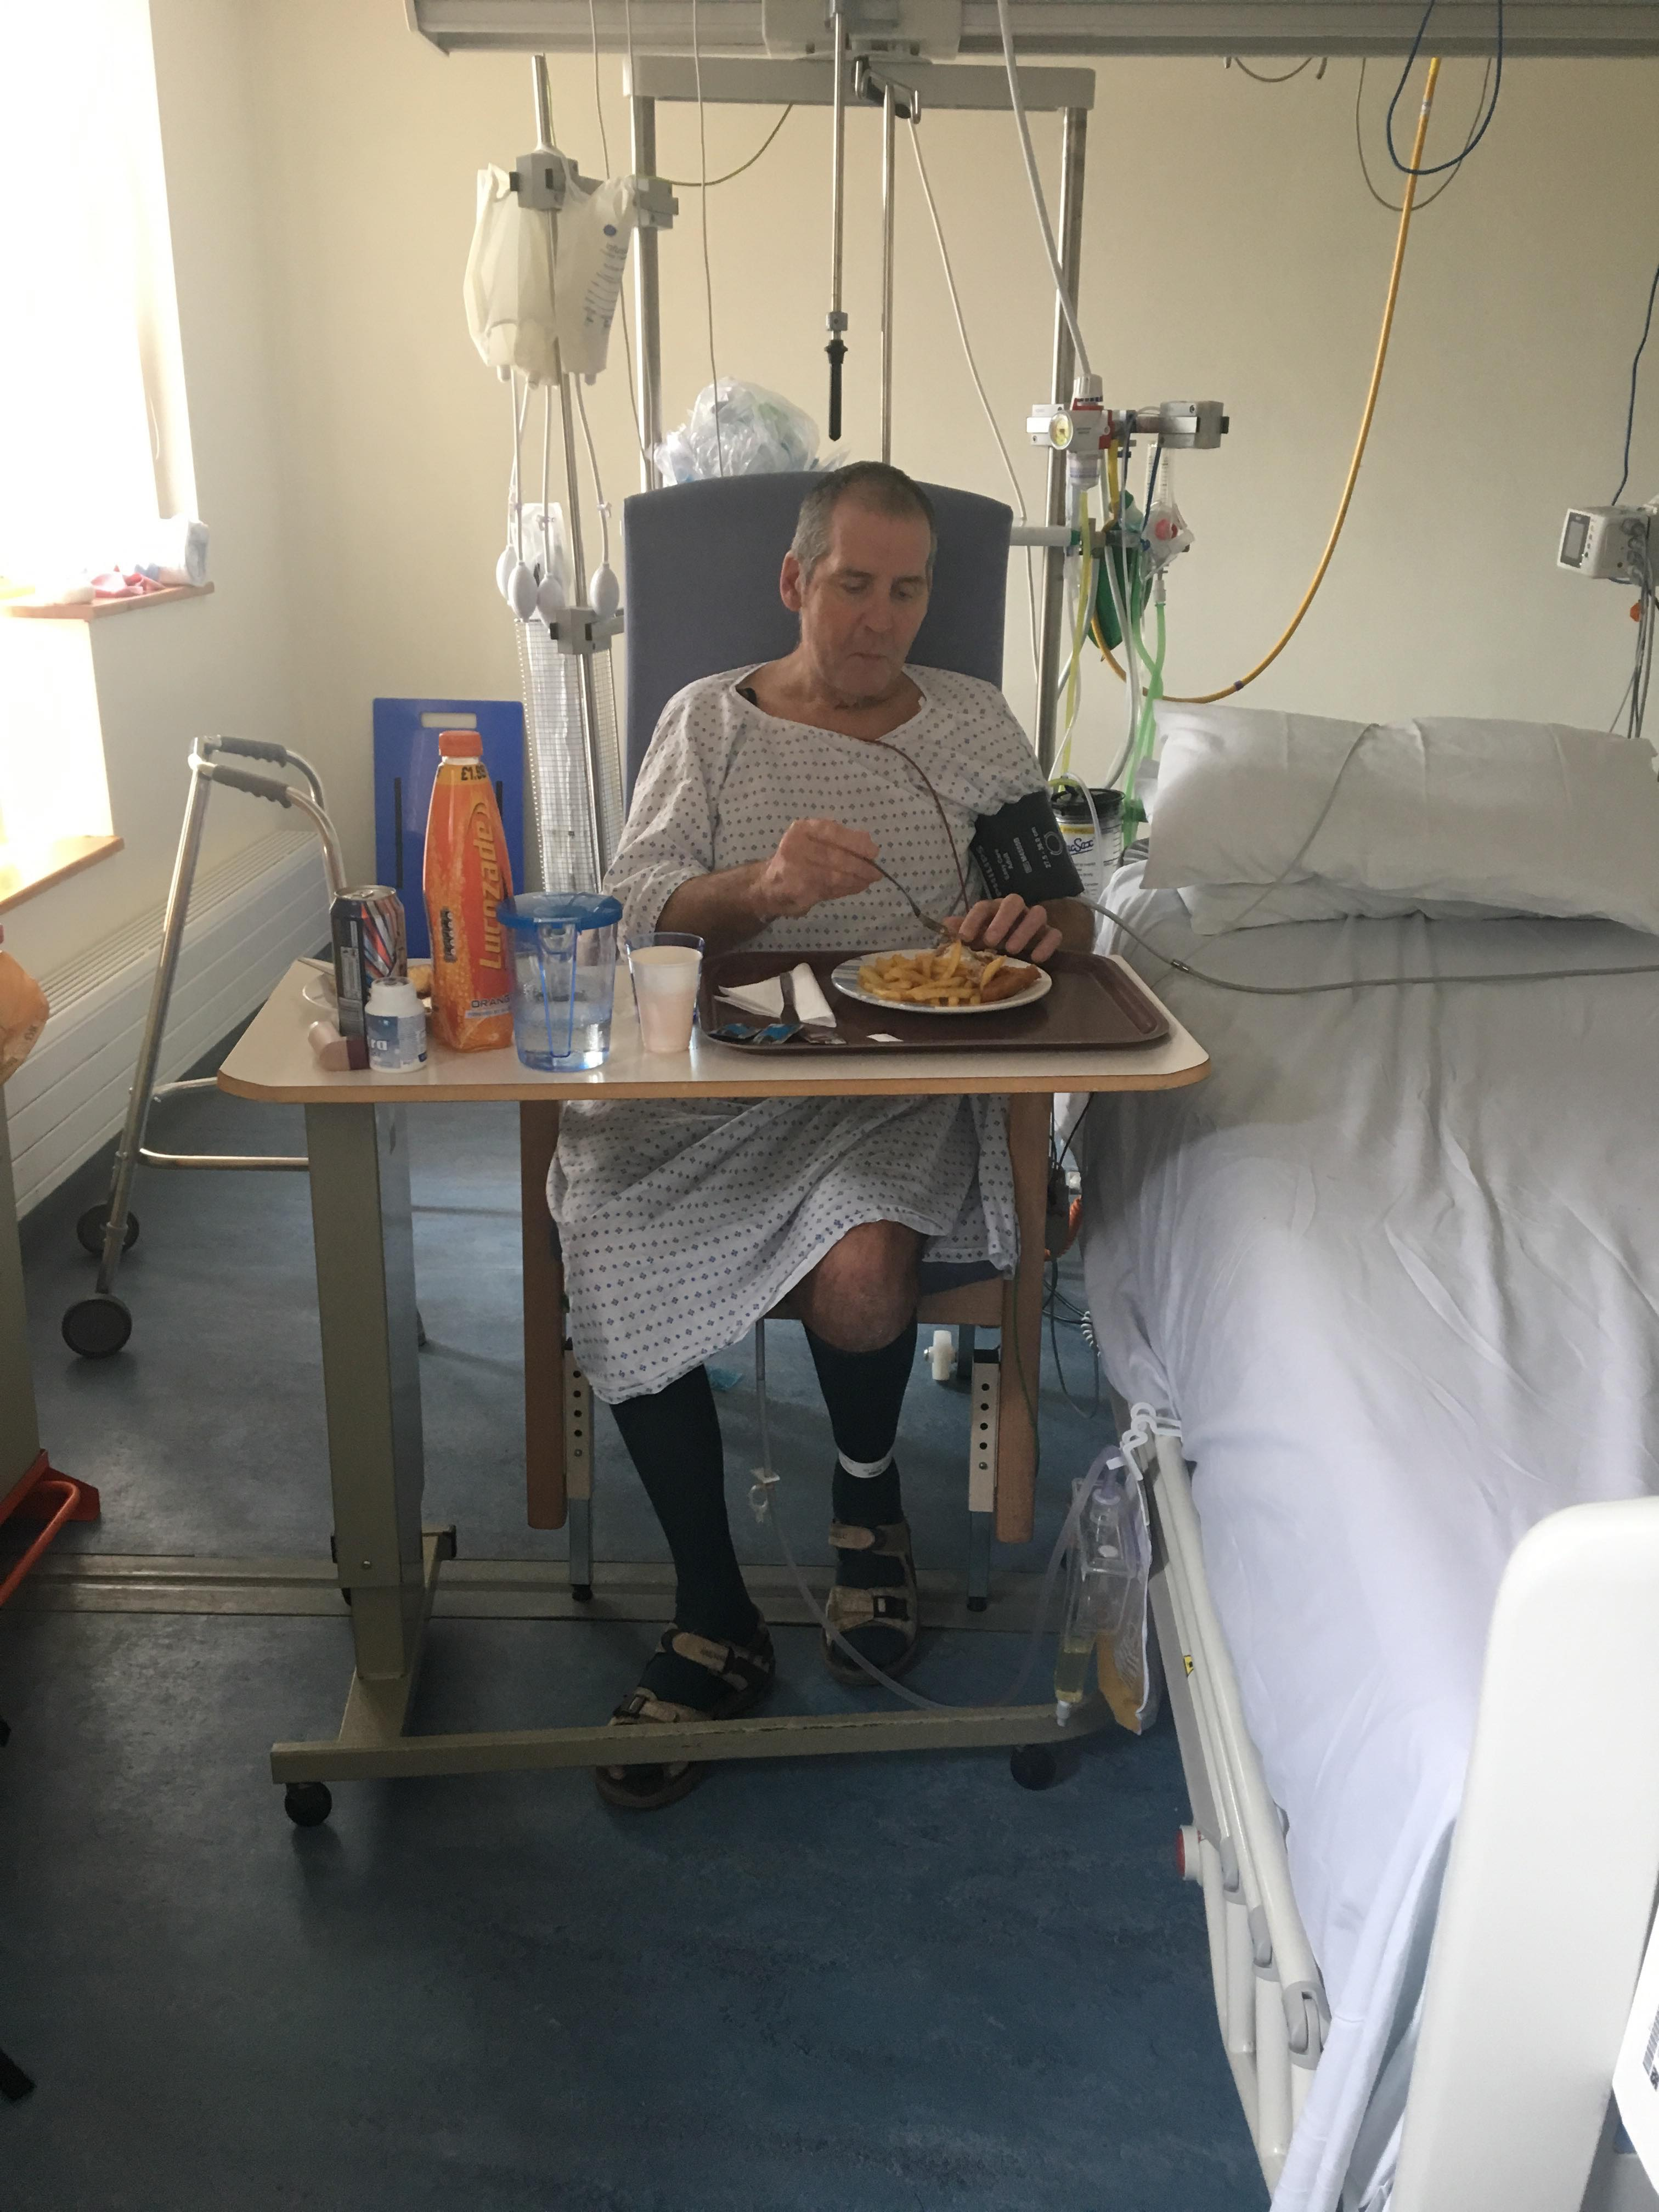 Man in hospital eating